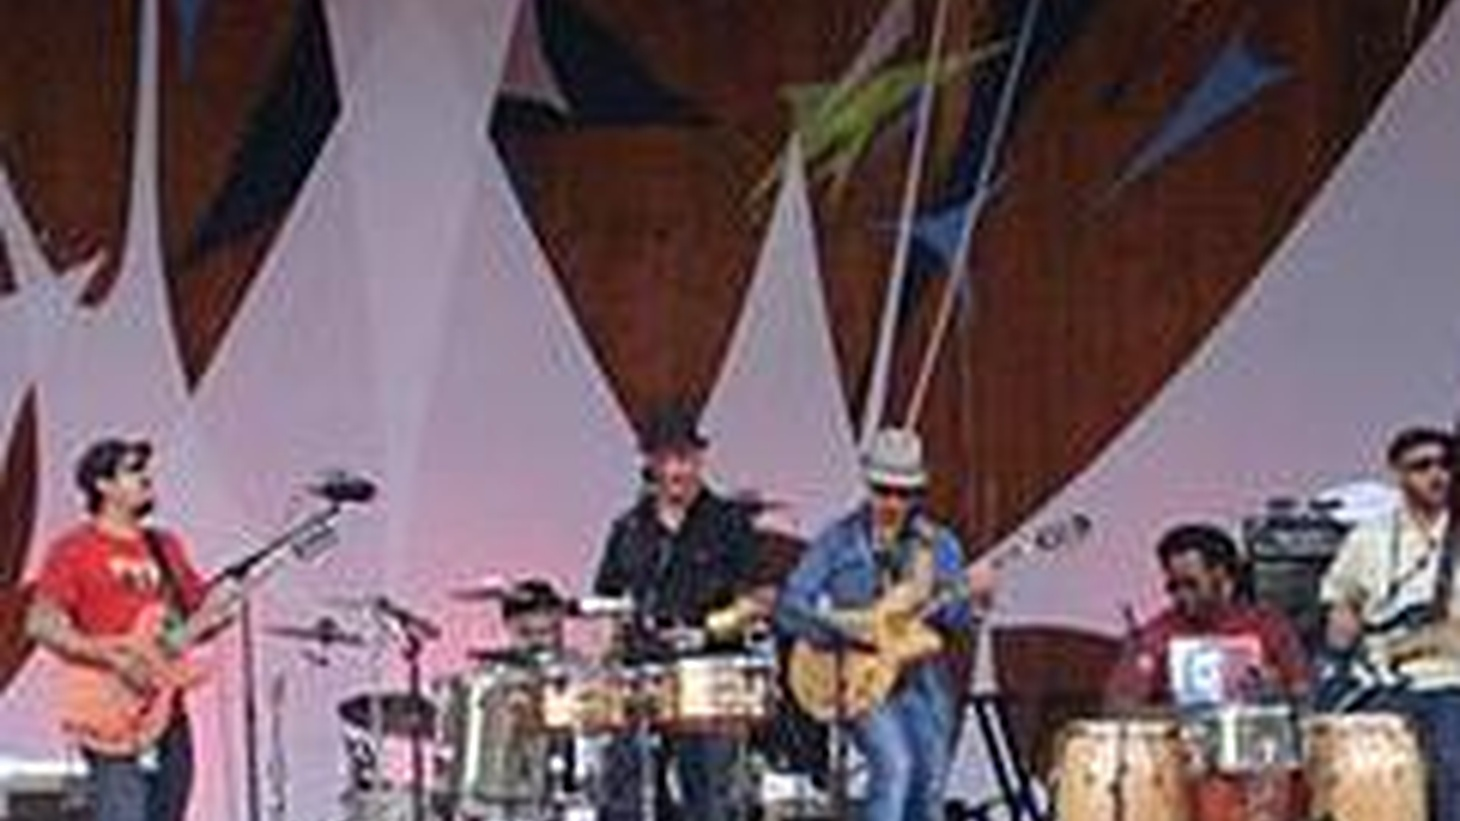 Grupo Fantasma are a jamming funk band comprised of members from all over Latin America who are based in Austin, Texas...